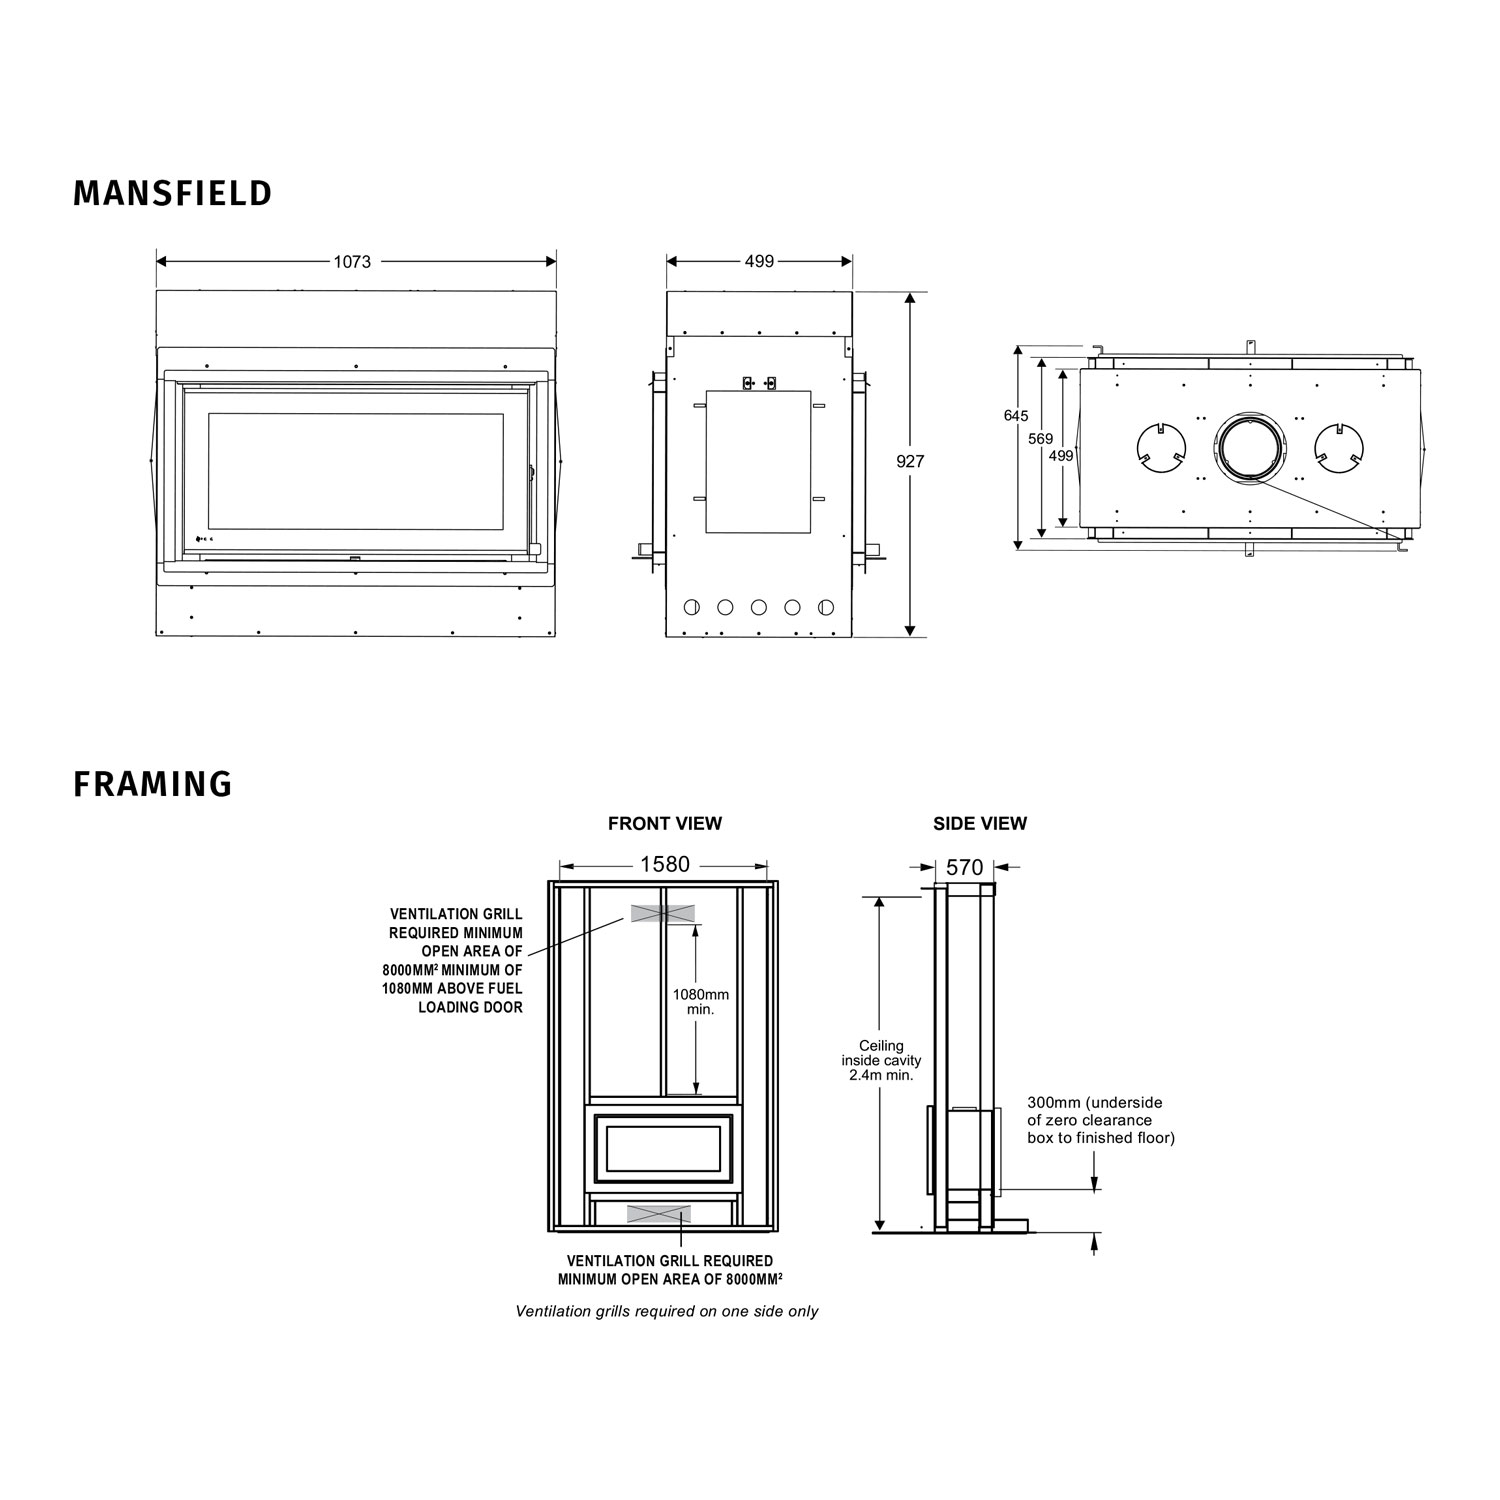 Regency Mansfield dimensions, framing and clearances